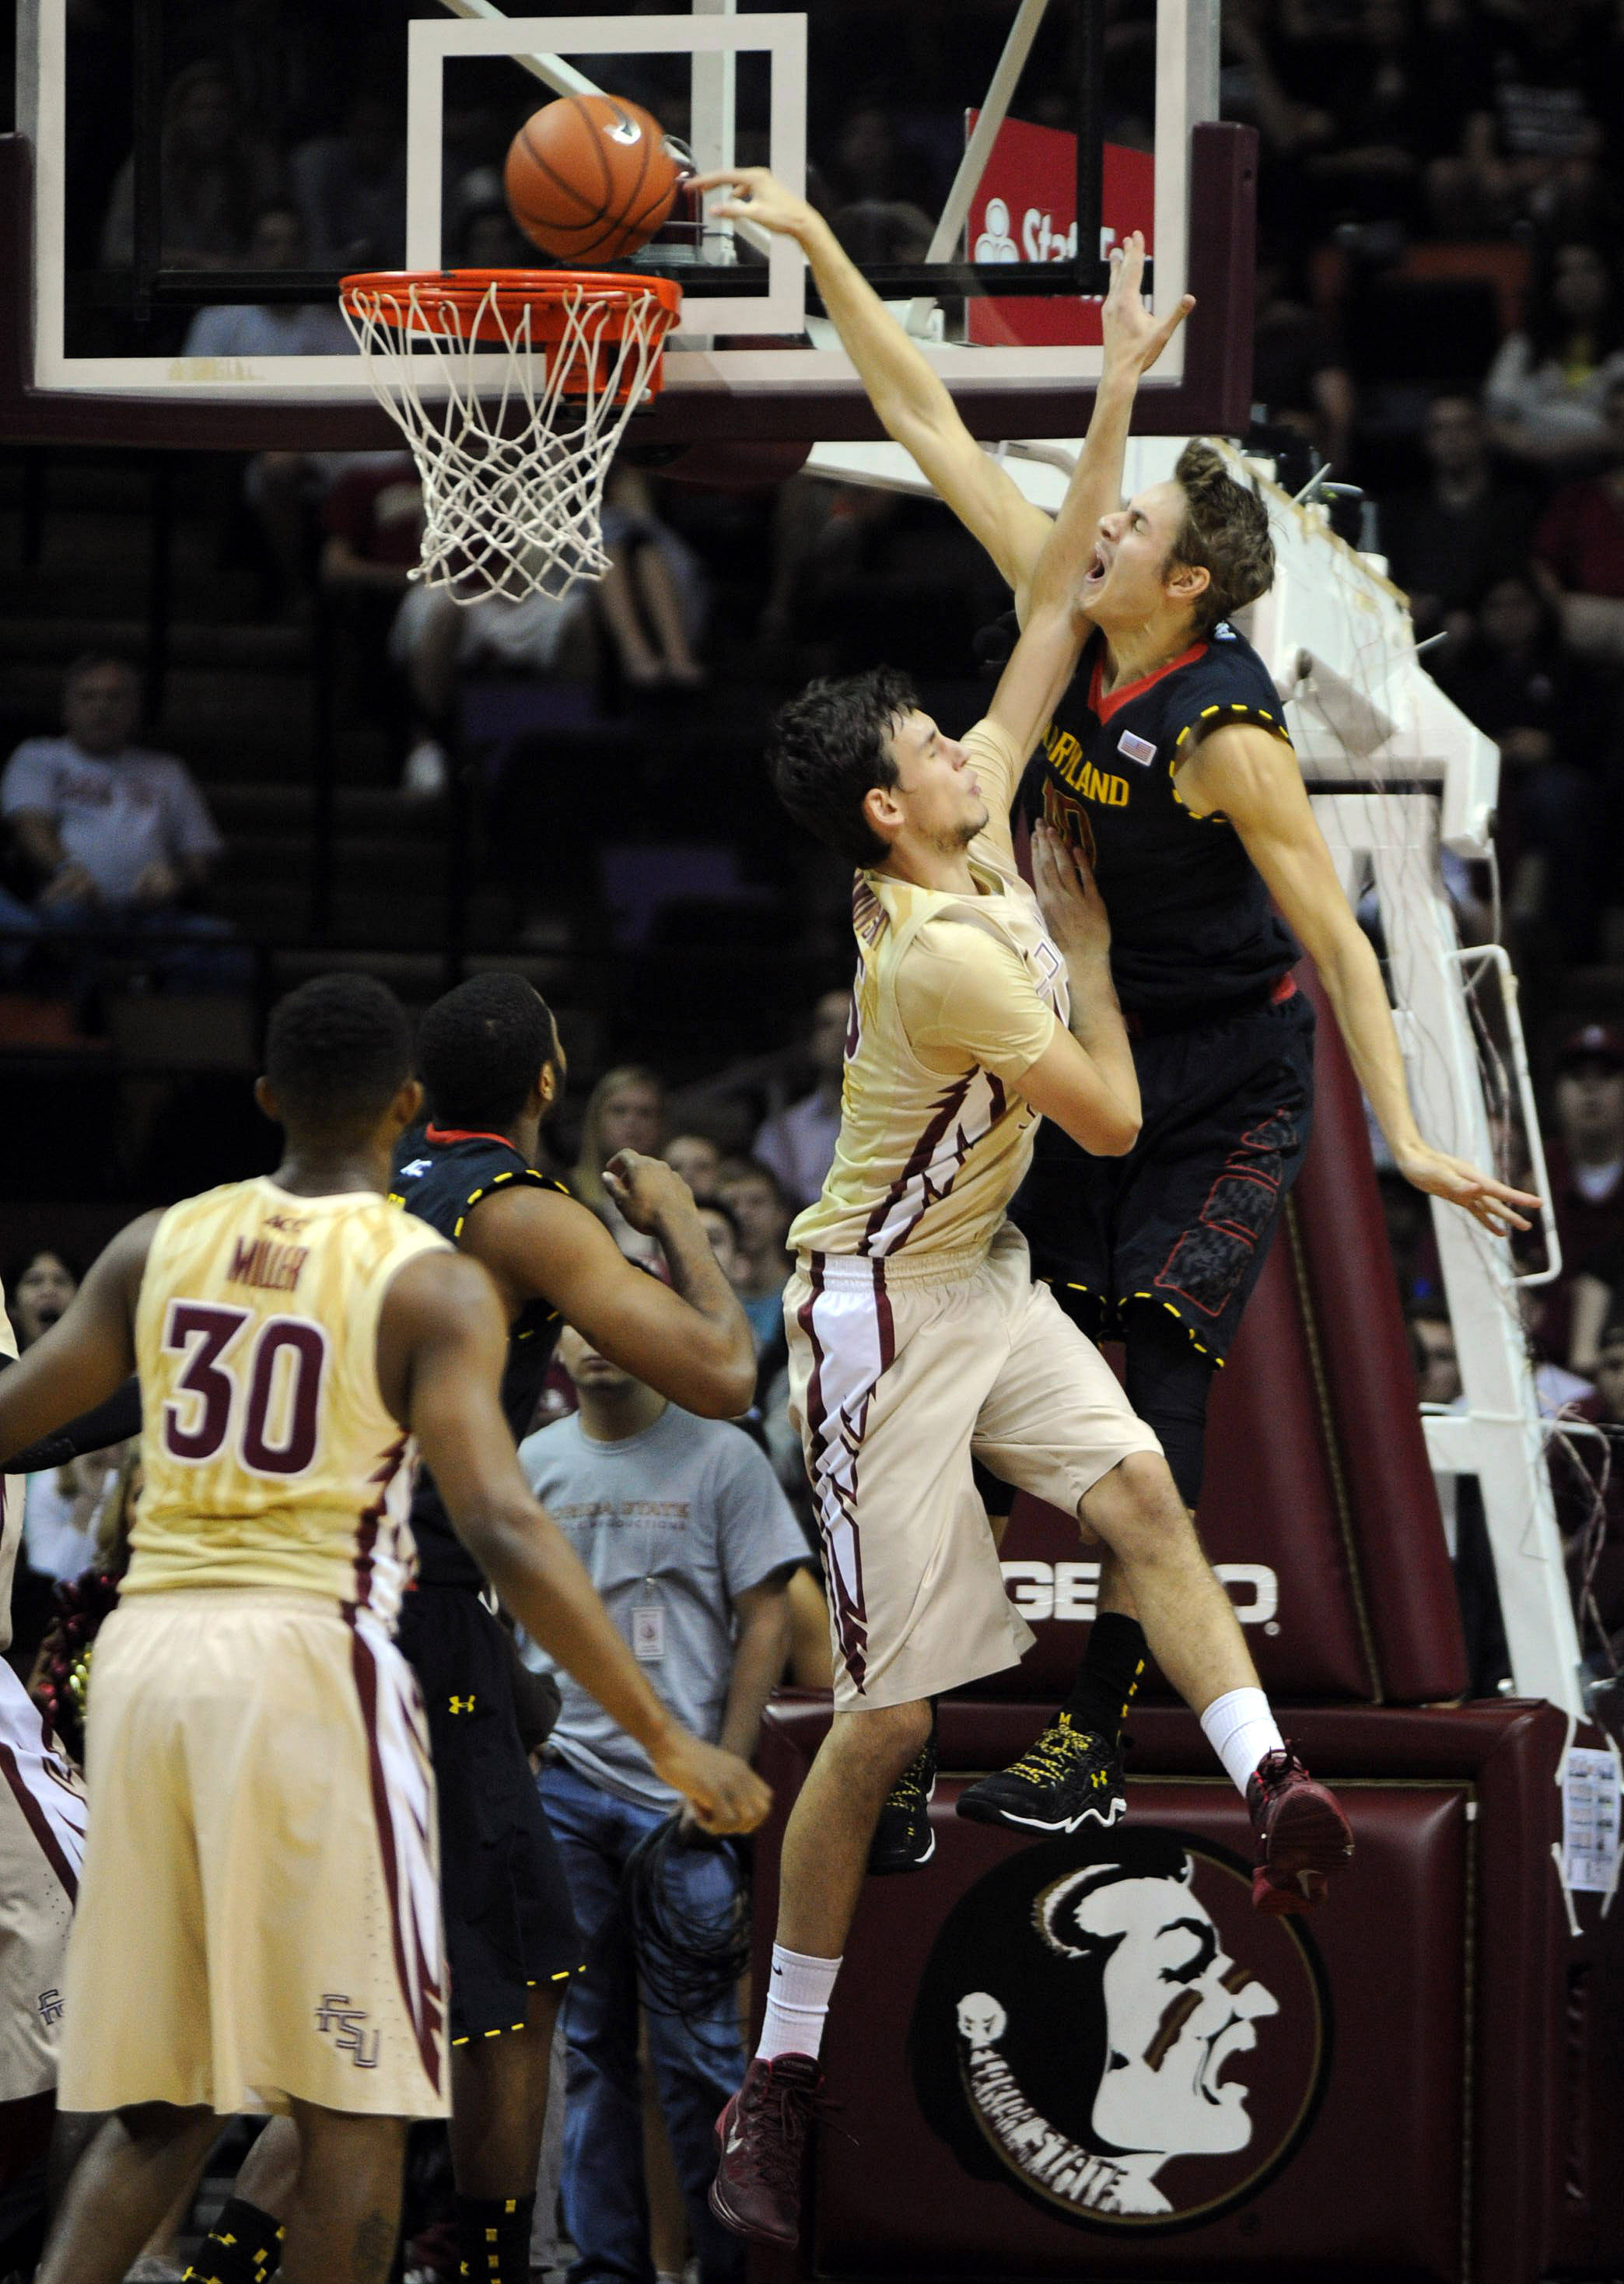 Jan 12, 2014; Tallahassee, FL, USA; Maryland Terrapins forward Jake Layman (10) misses a dunk as he is defended by Florida State Seminoles forward Boris Bojanovsky (15) during the first half of the game at the Donald L. Tucker Center. Mandatory Credit: Melina Vastola-USA TODAY Sports